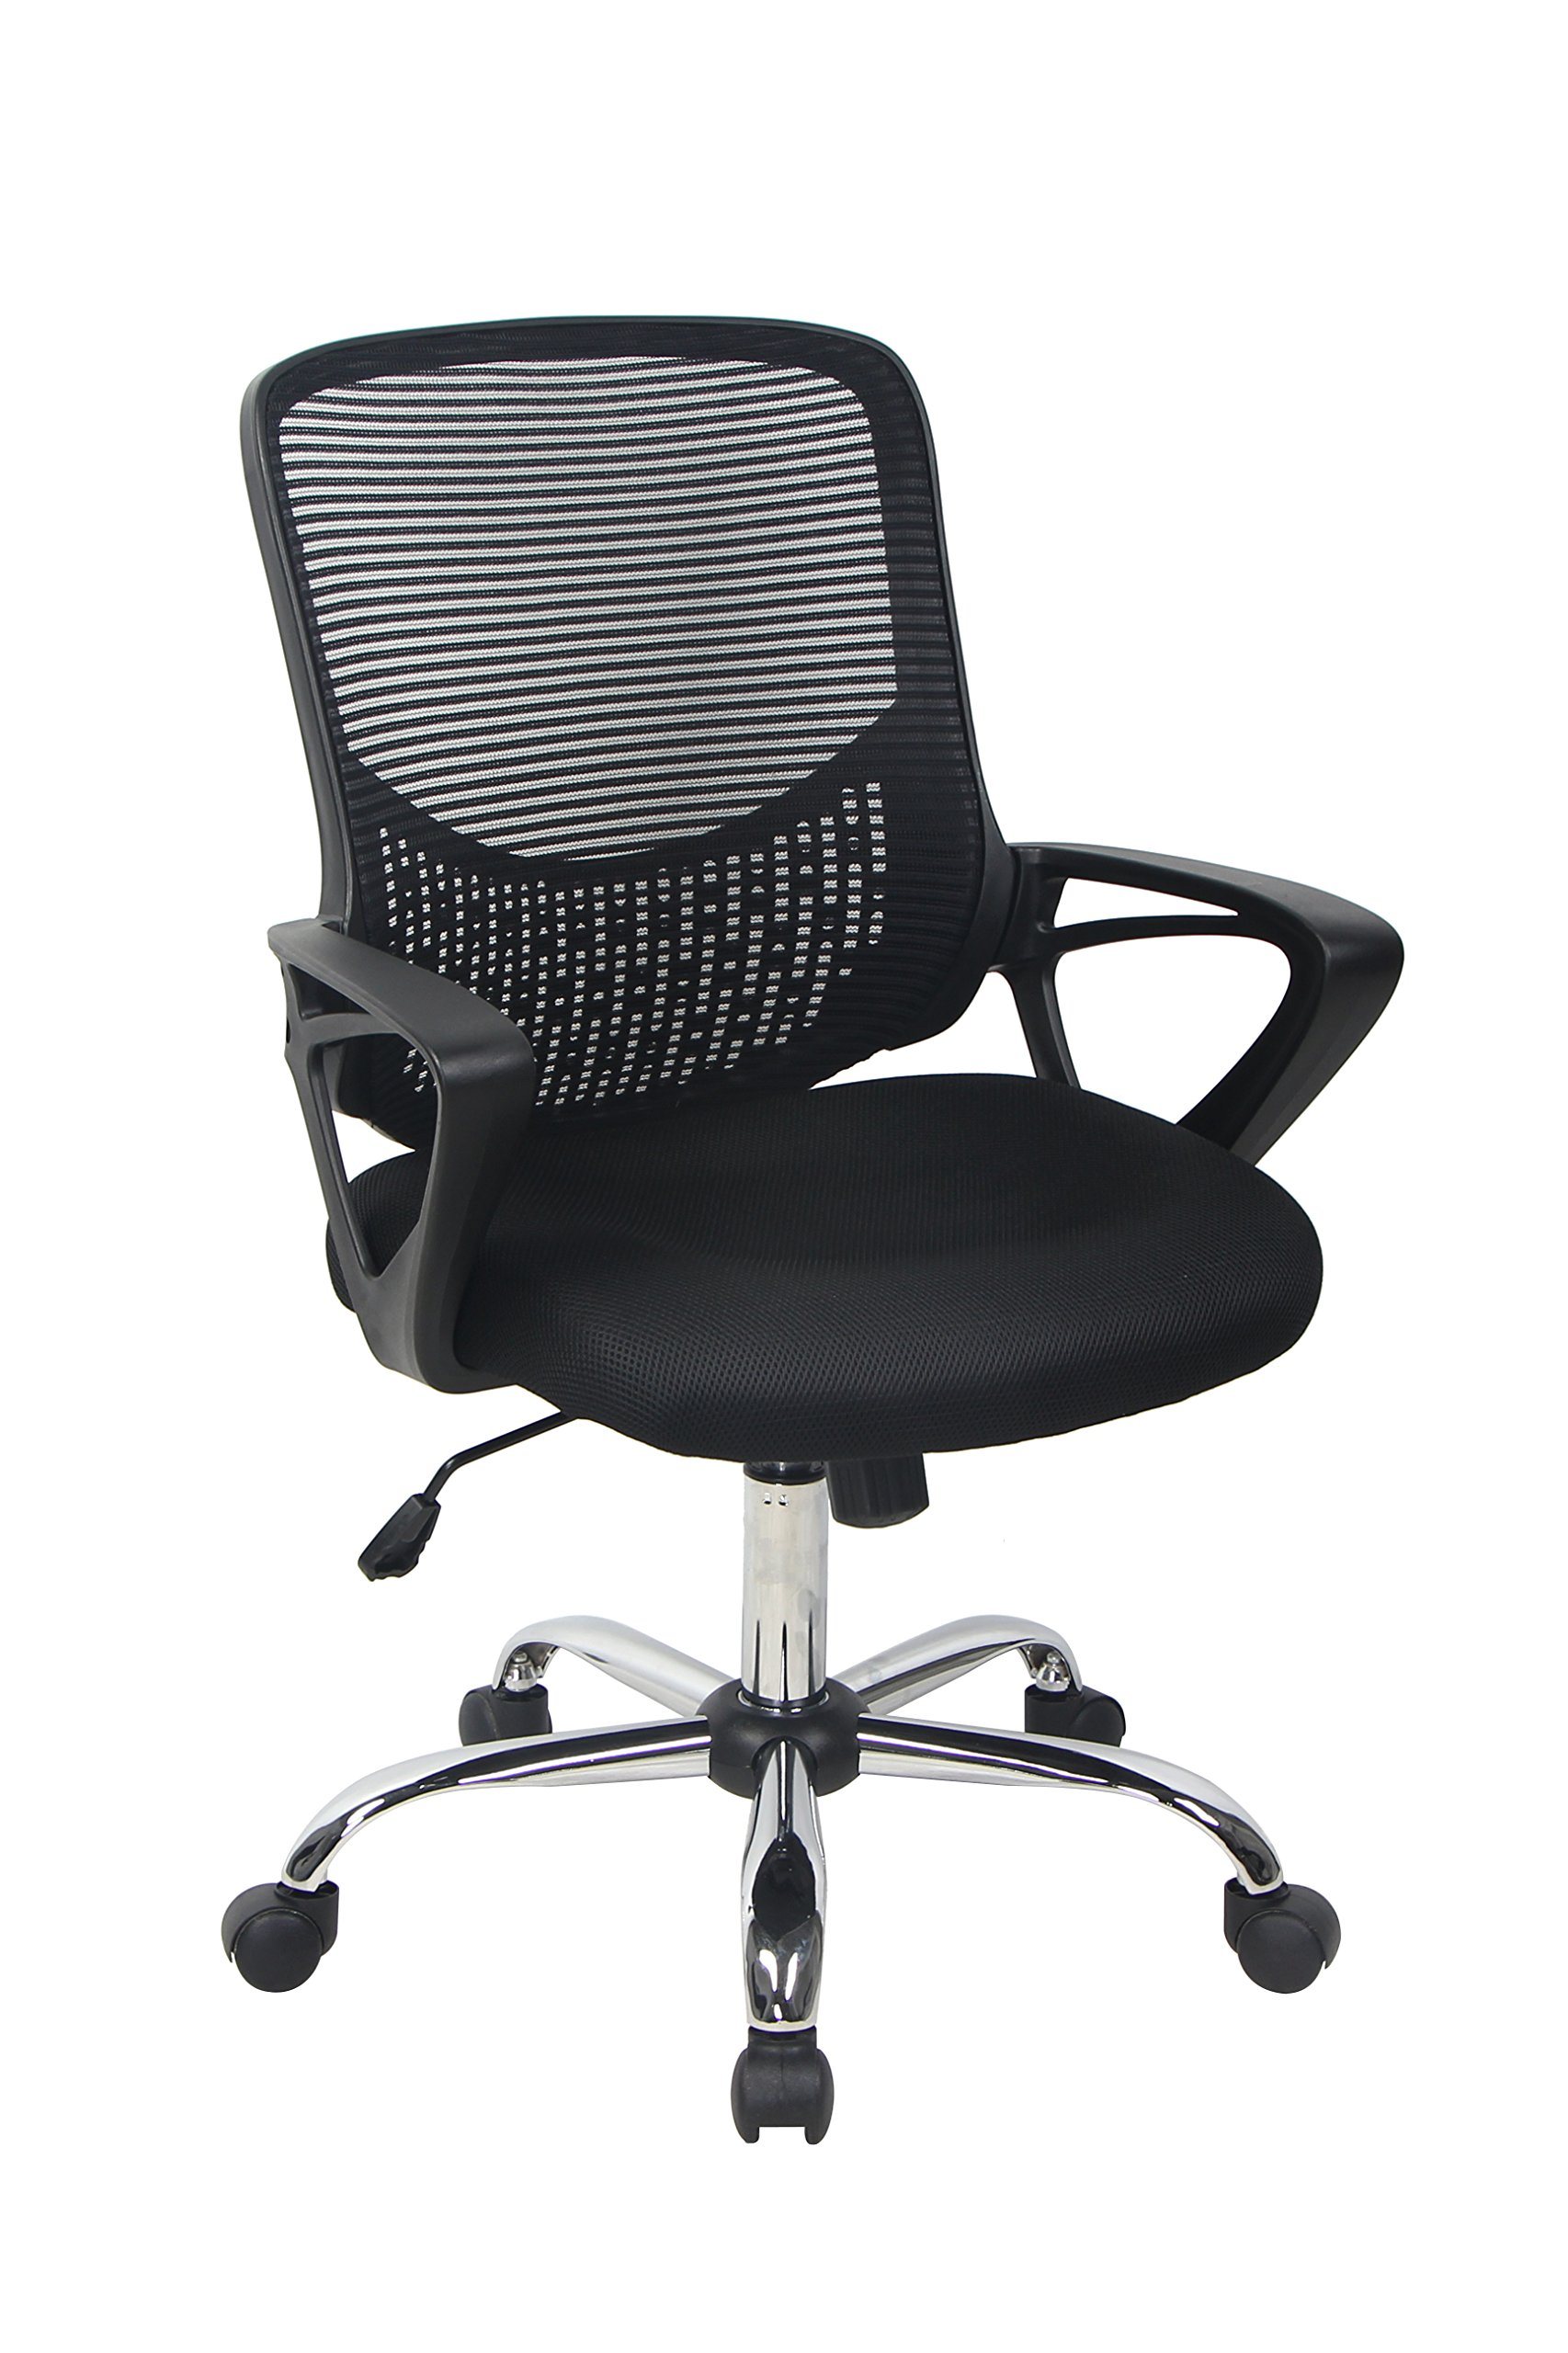 Bonum Black Mid-Back Mesh Fabric Swivel Office Chair Adjustable Desk Chair Home Office Chair with Mesh Padded Seat and Armrest